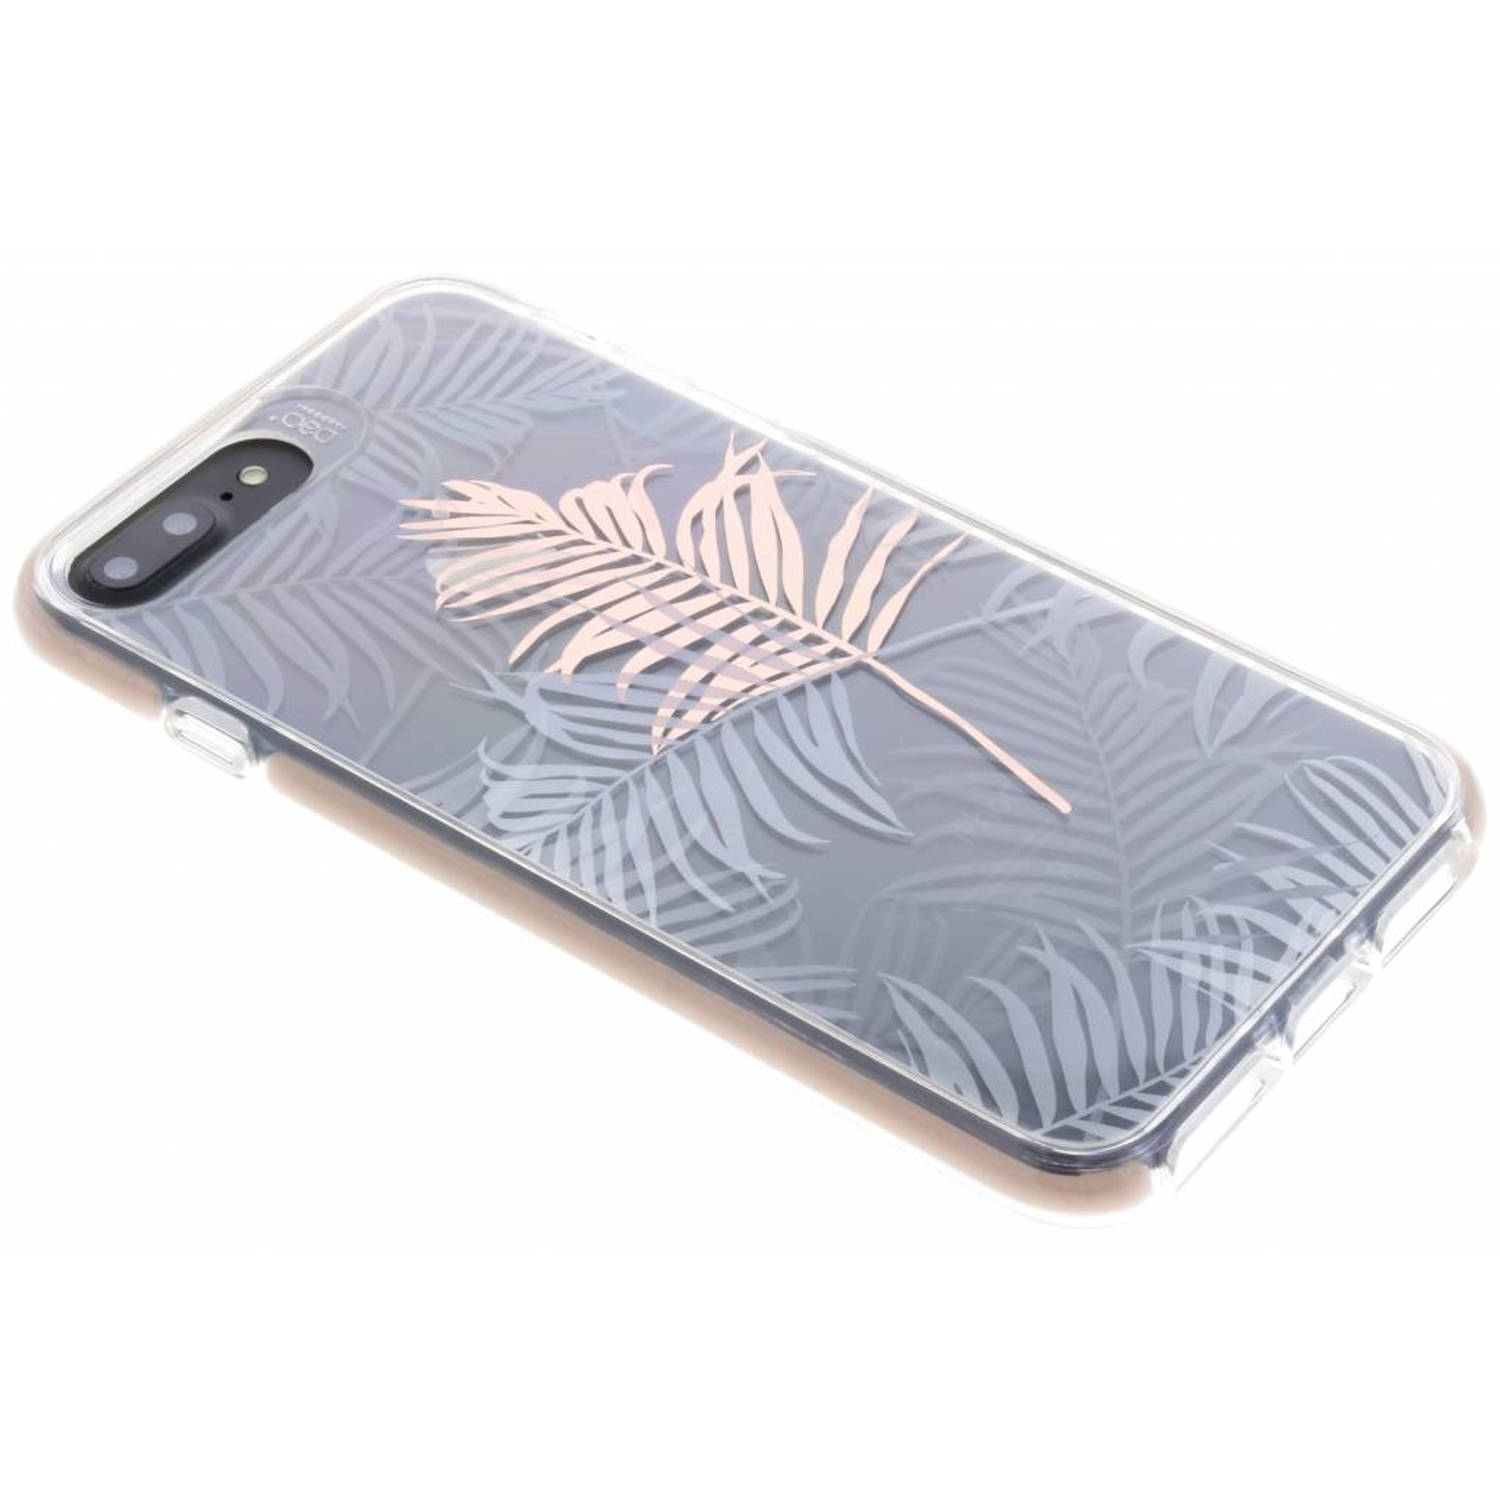 Palms Victoria Case voor de iPhone 8 Plus / 7 Plus / 6(s) Plus